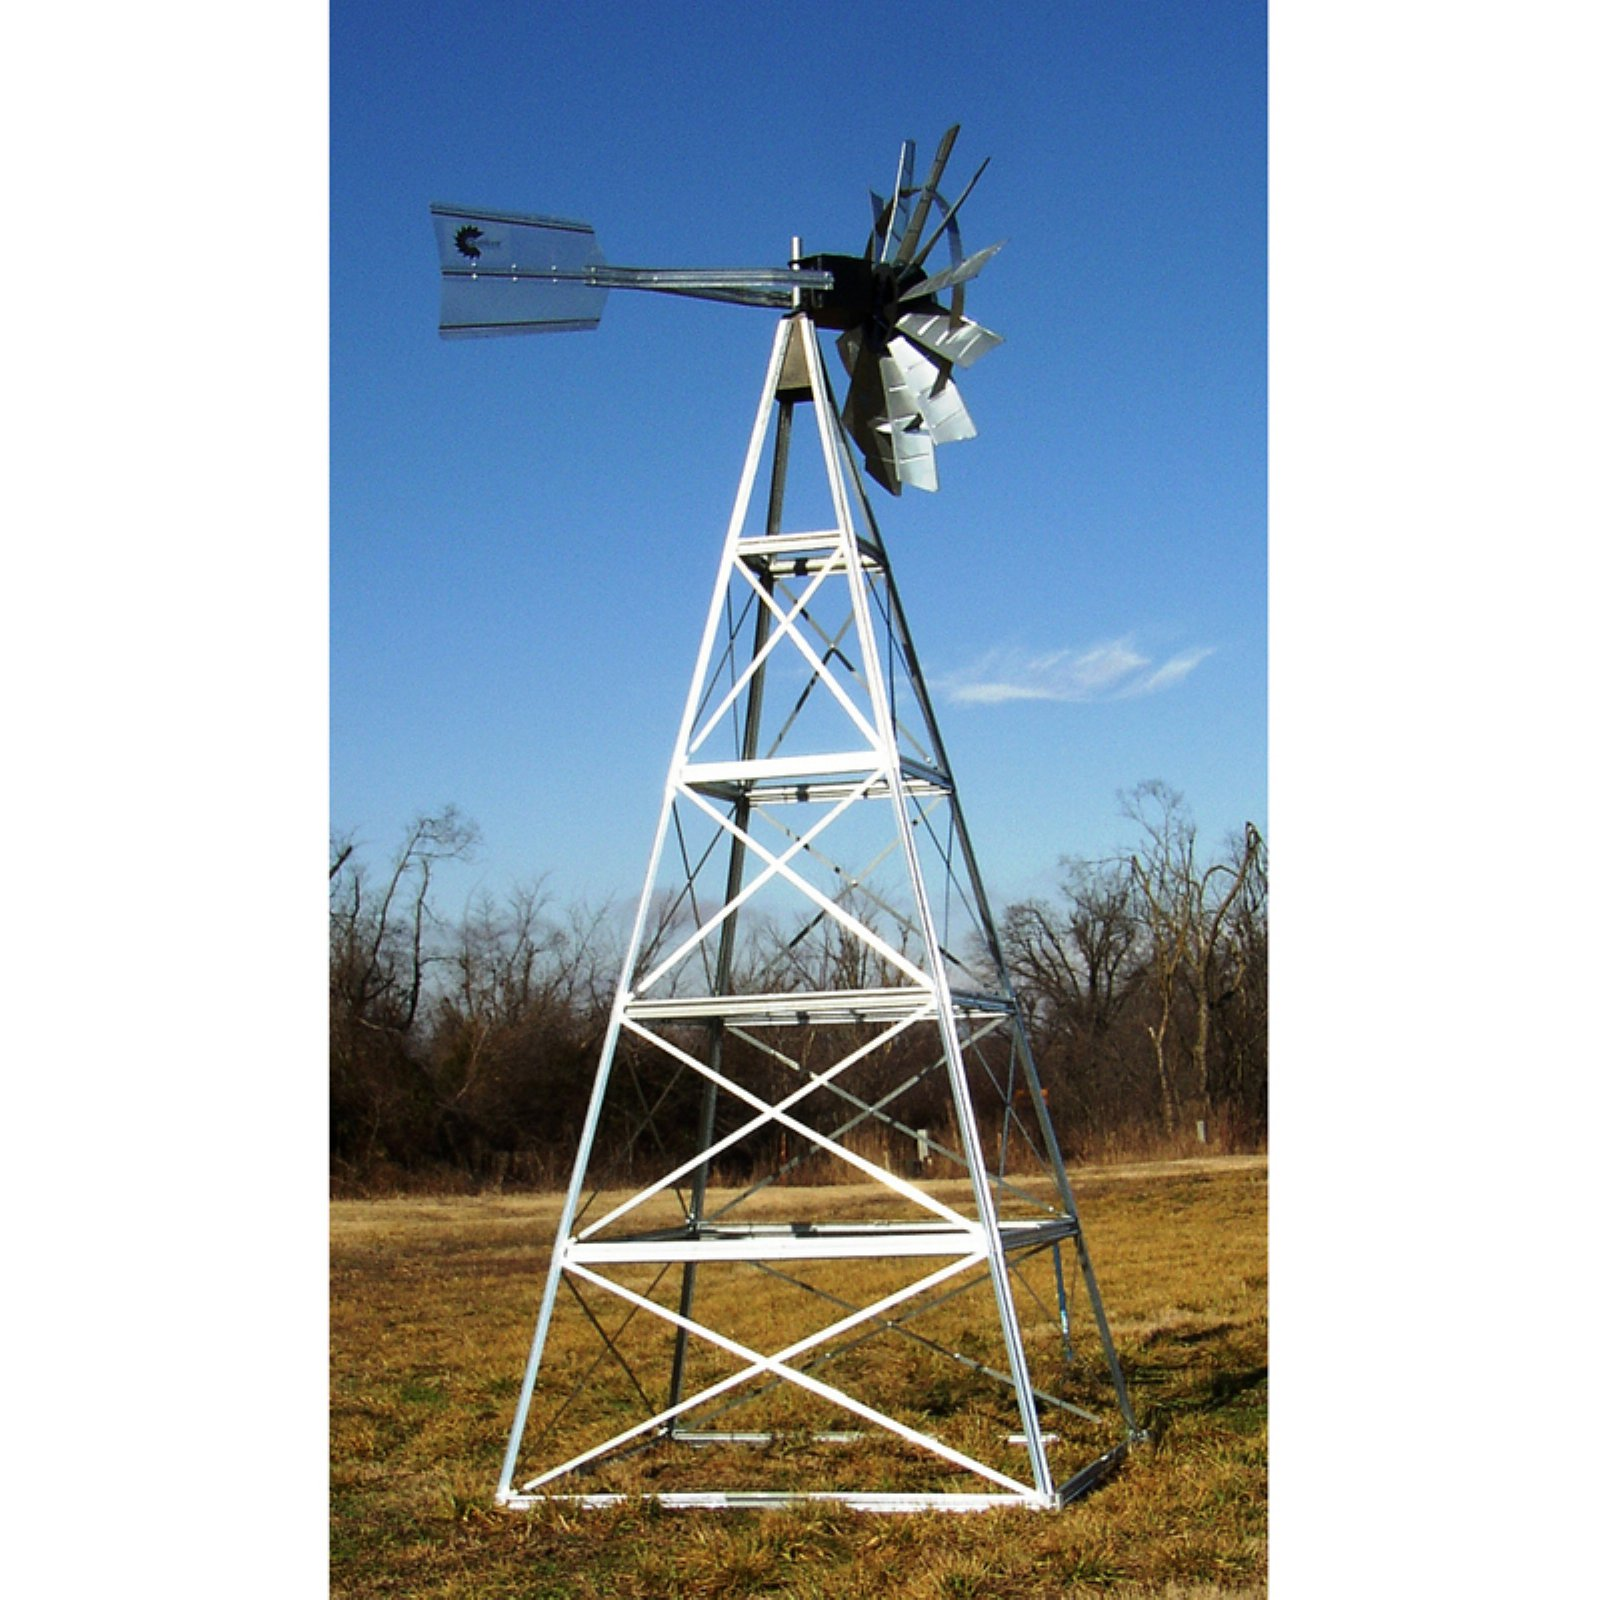 Deluxe 20 ft. Customized Powder Coated Steel Underwater Aeration Windmills by Windmills